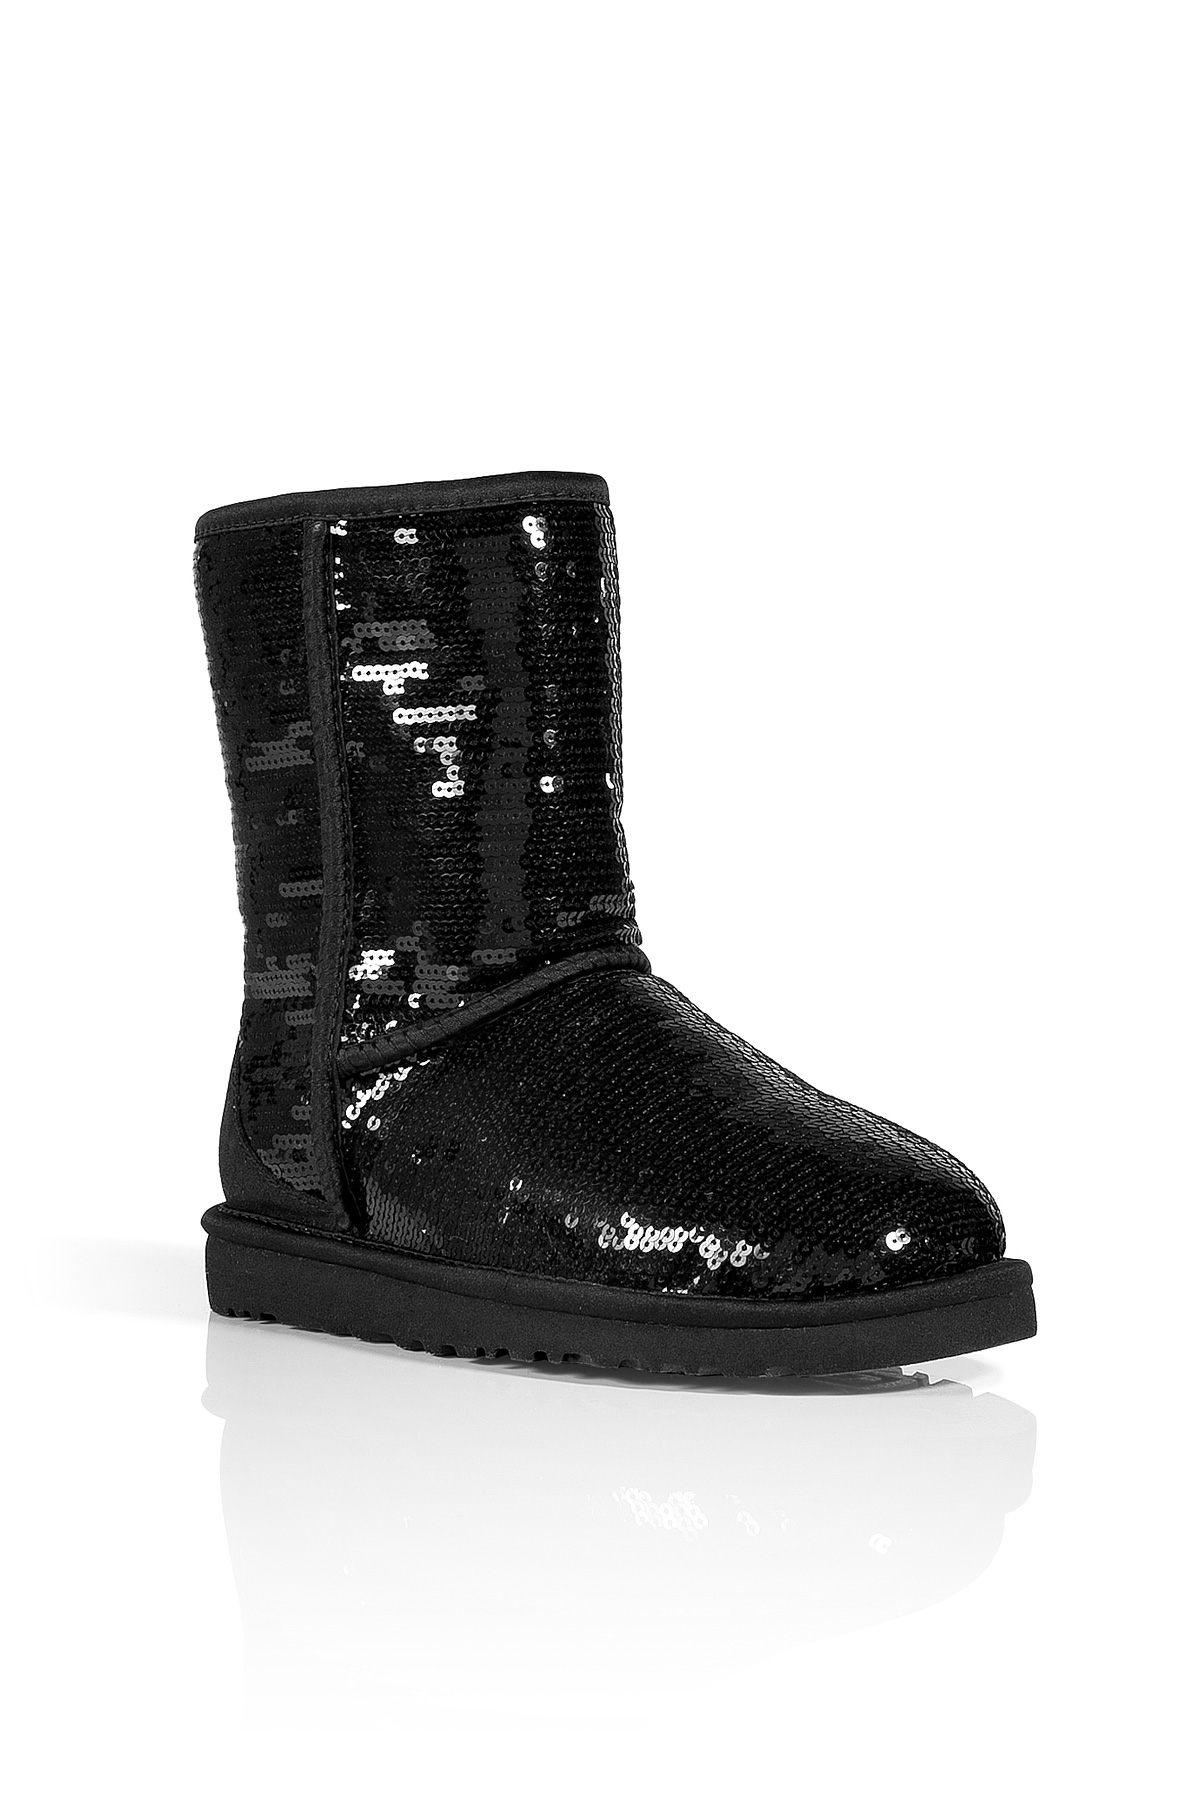 Ugg Black Sequin Classic Short Sparkles Boots In Black Lyst